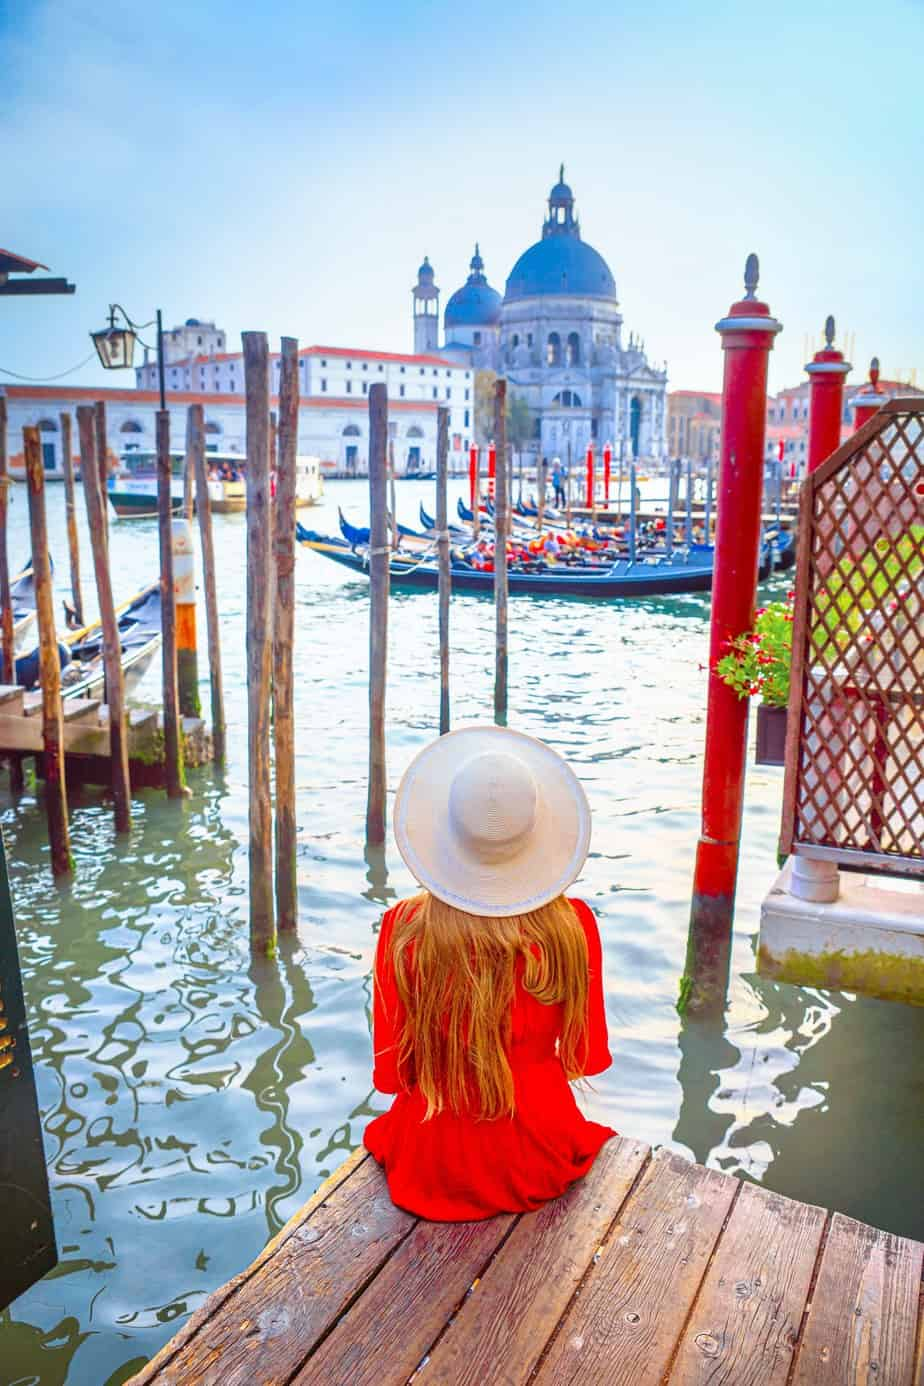 Exactly how to find the most instagrammable places in Venice Italy | Pretty gondolas in Instagram photos in Venice | Venice italy photo locations | where to take photos in Venice | hidden spots in Venice italy